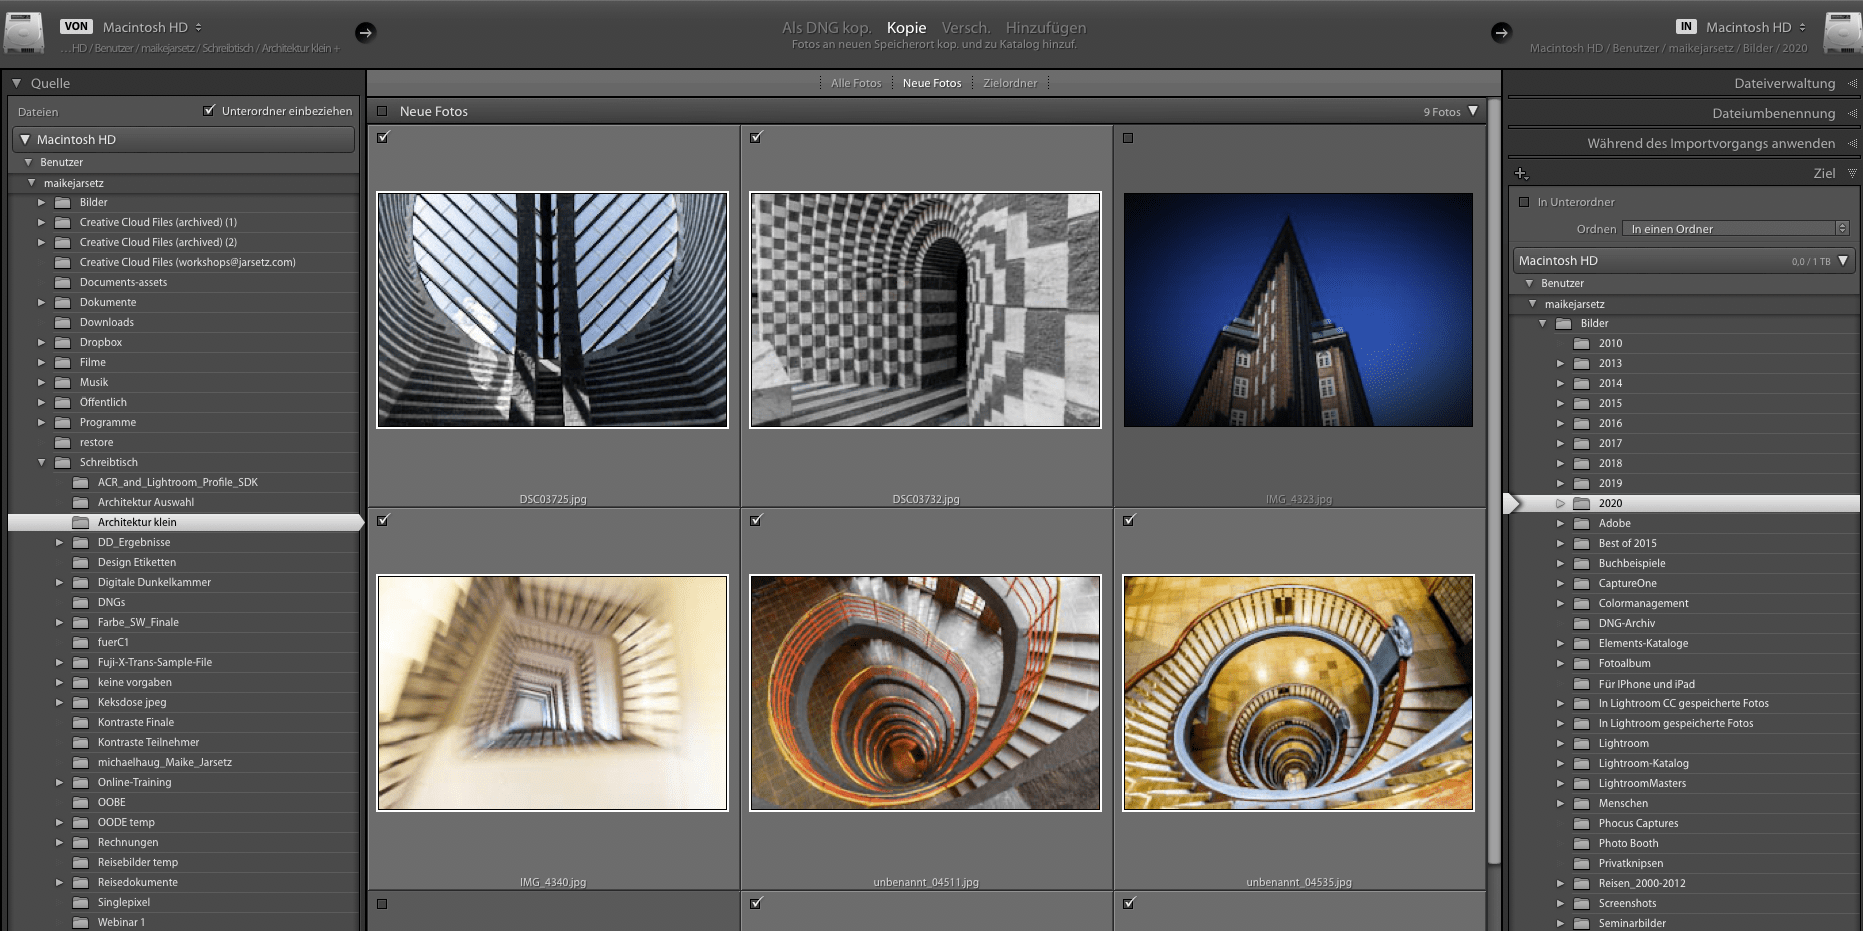 Lightroom-Workflow Reise- und Architekturfotografie